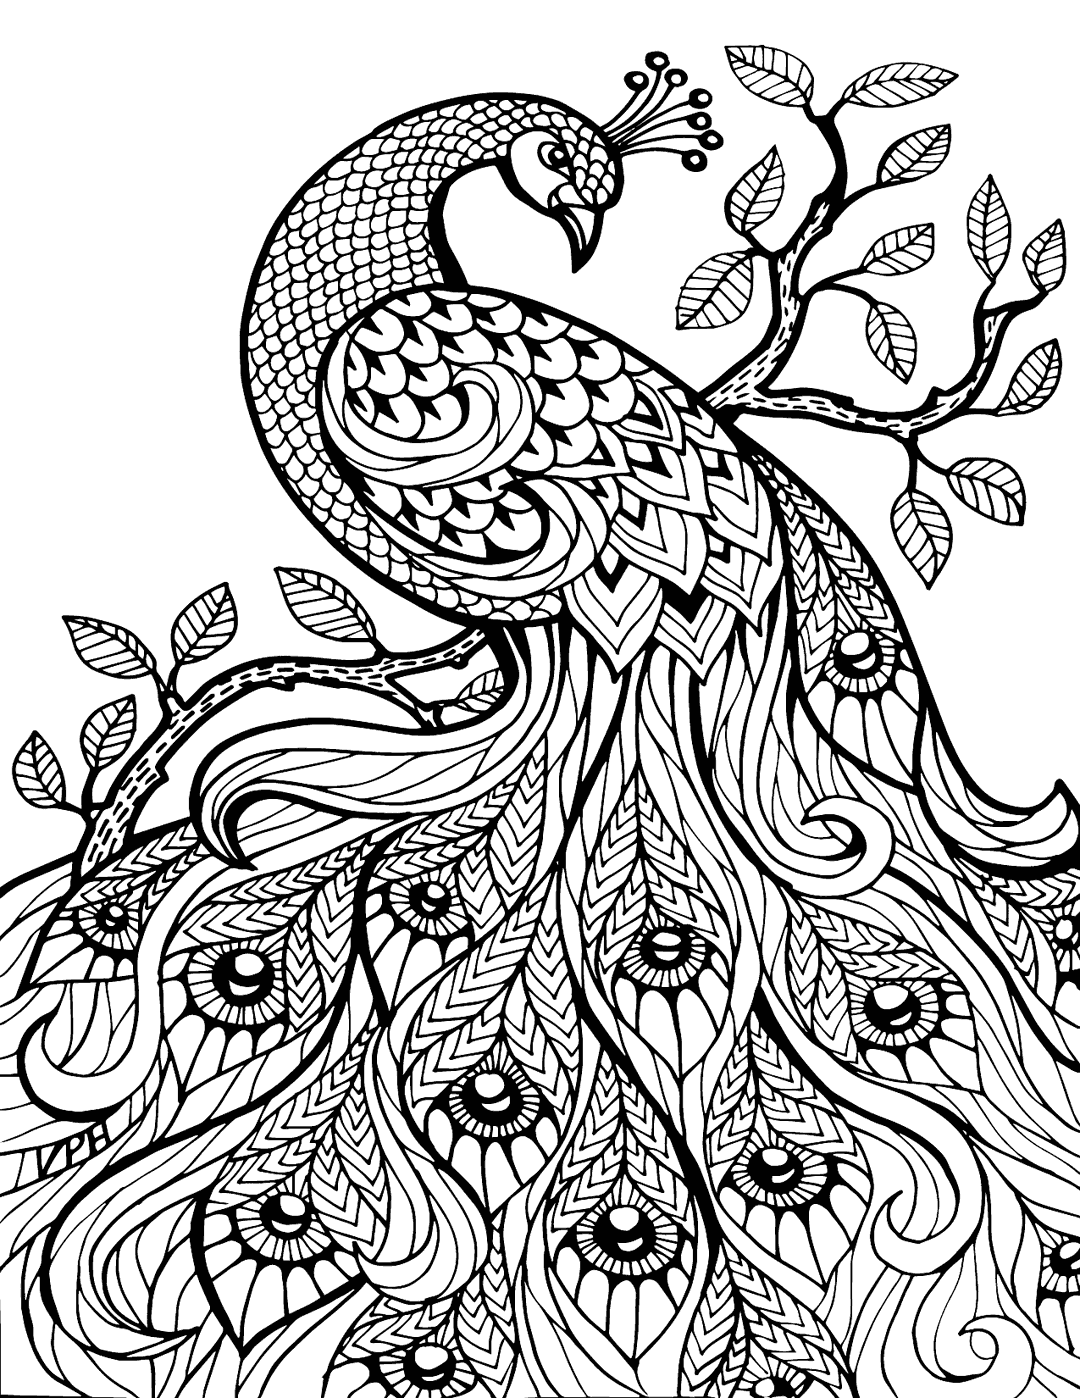 Peacock Coloring For Adults